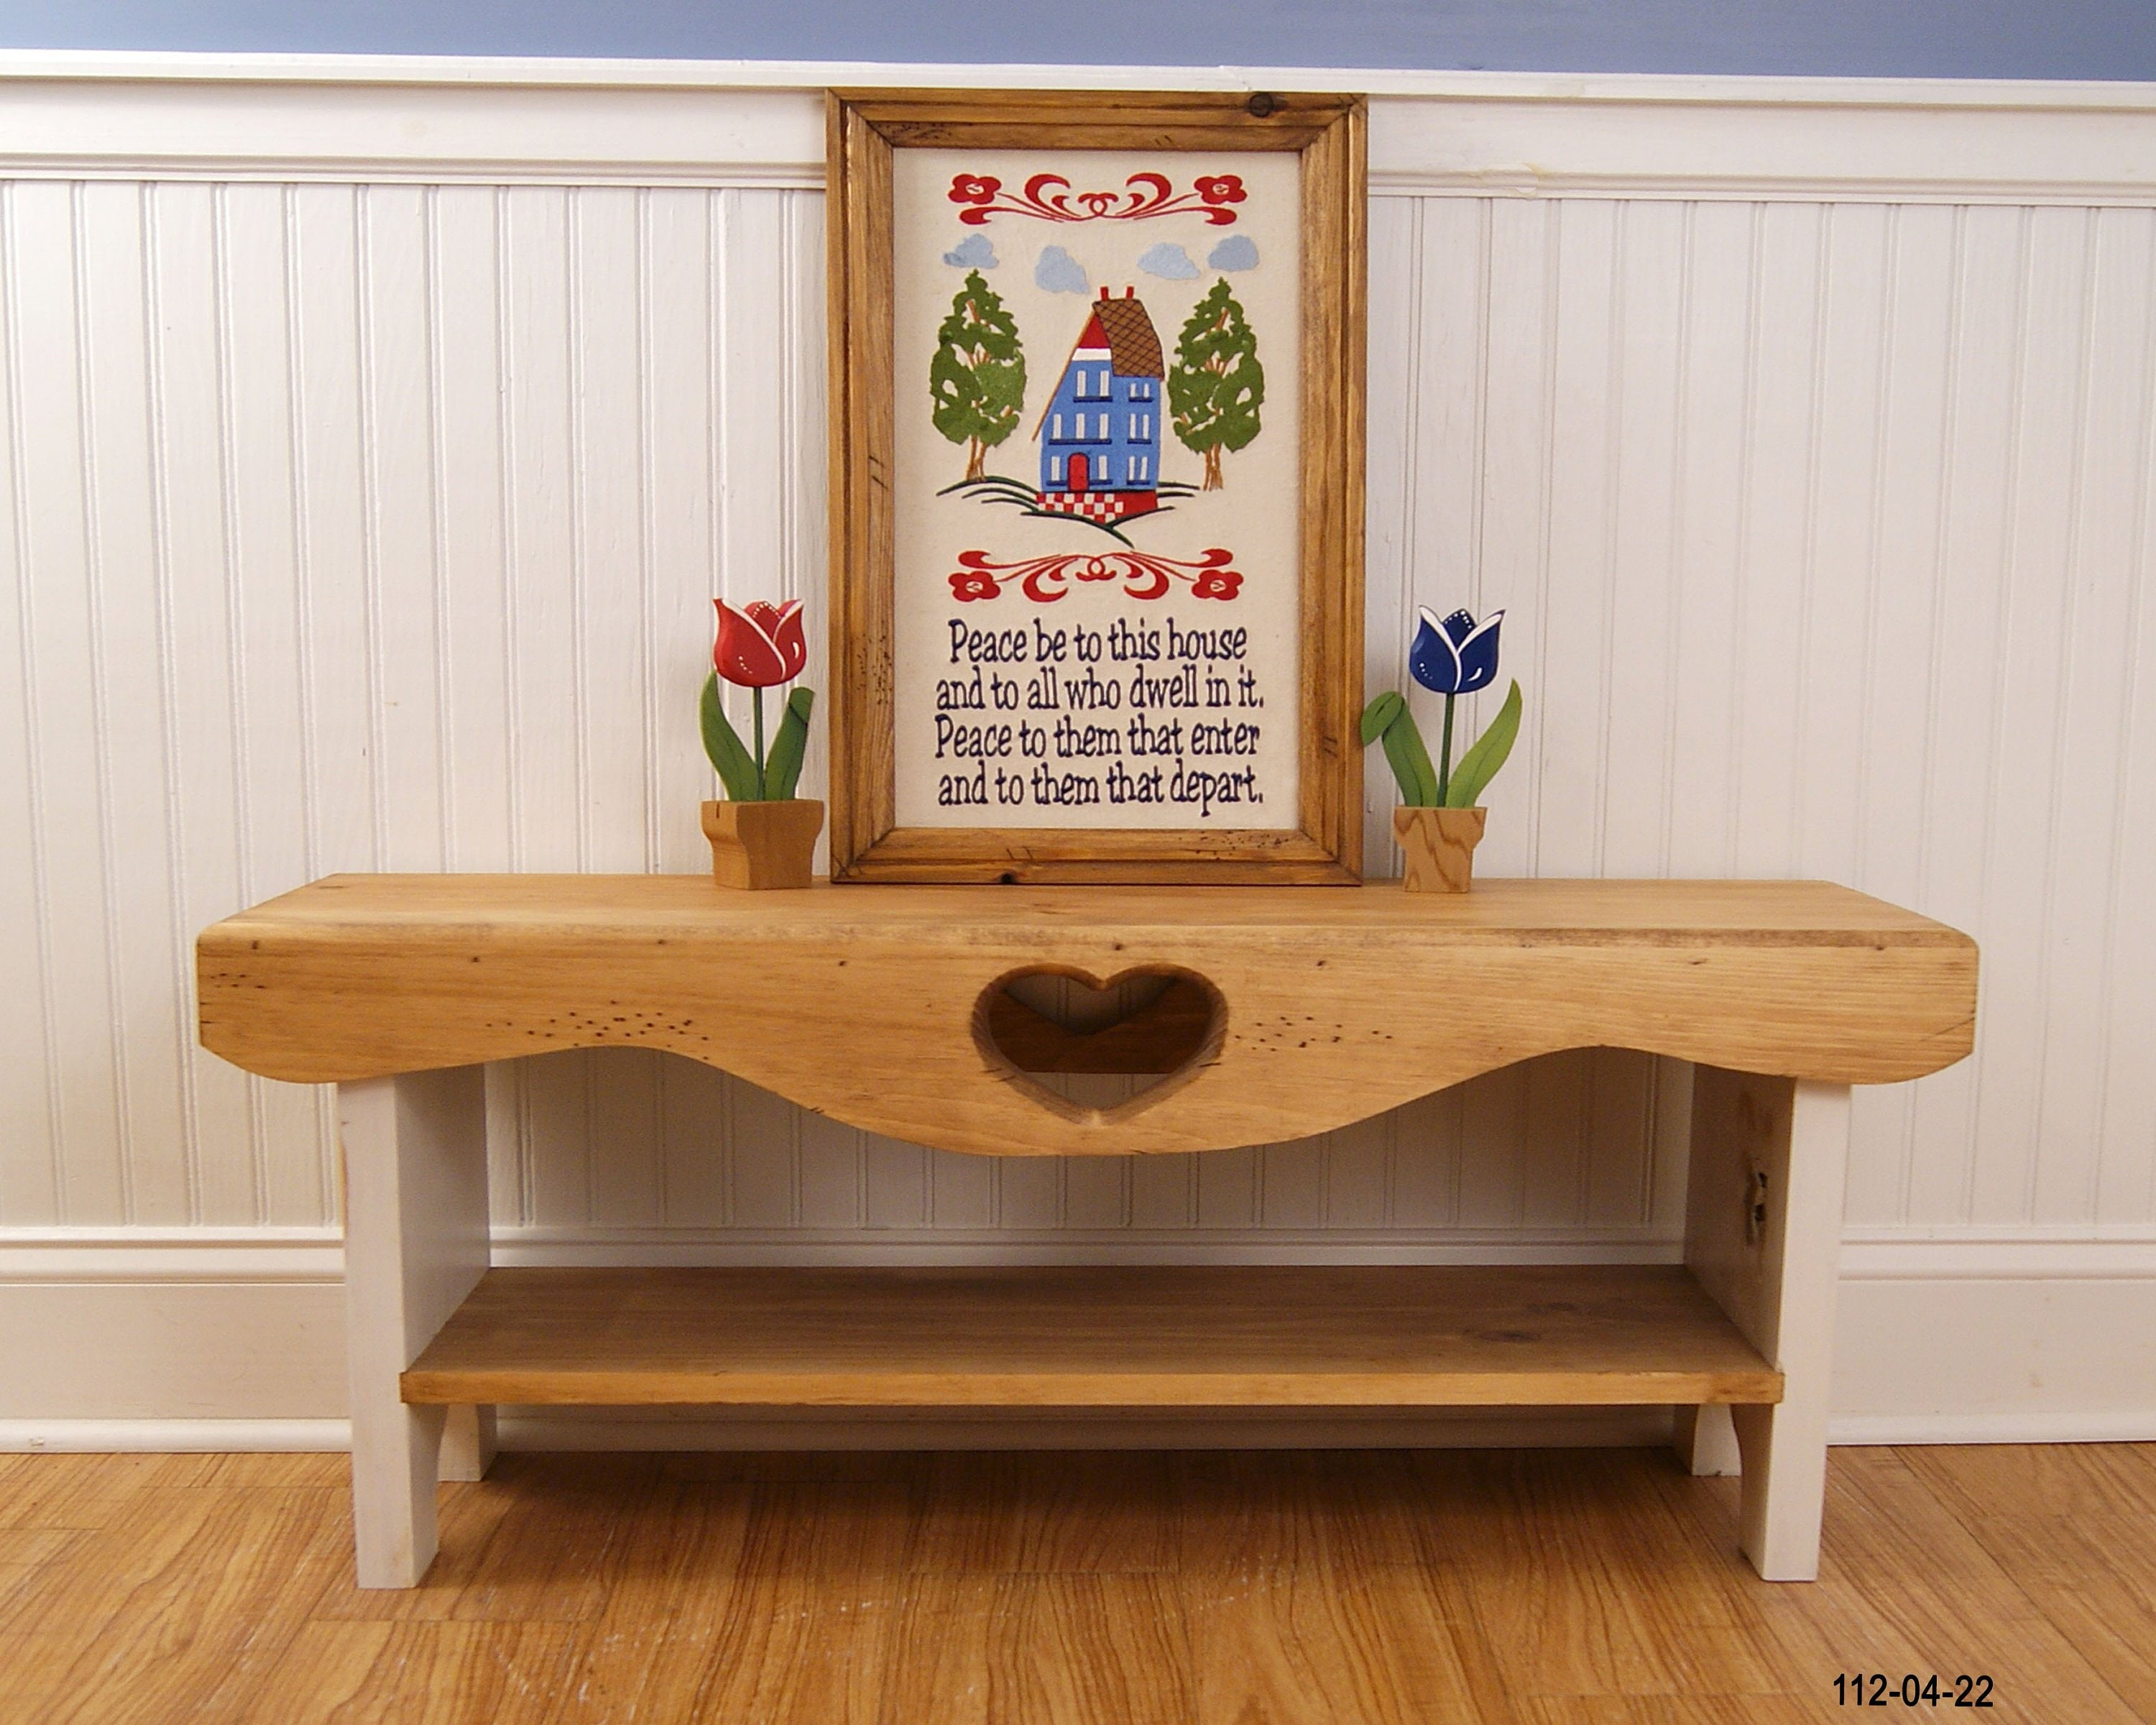 Bedroom Bench Farmhouse Bench Shaker Bench Heart Bench Bench With